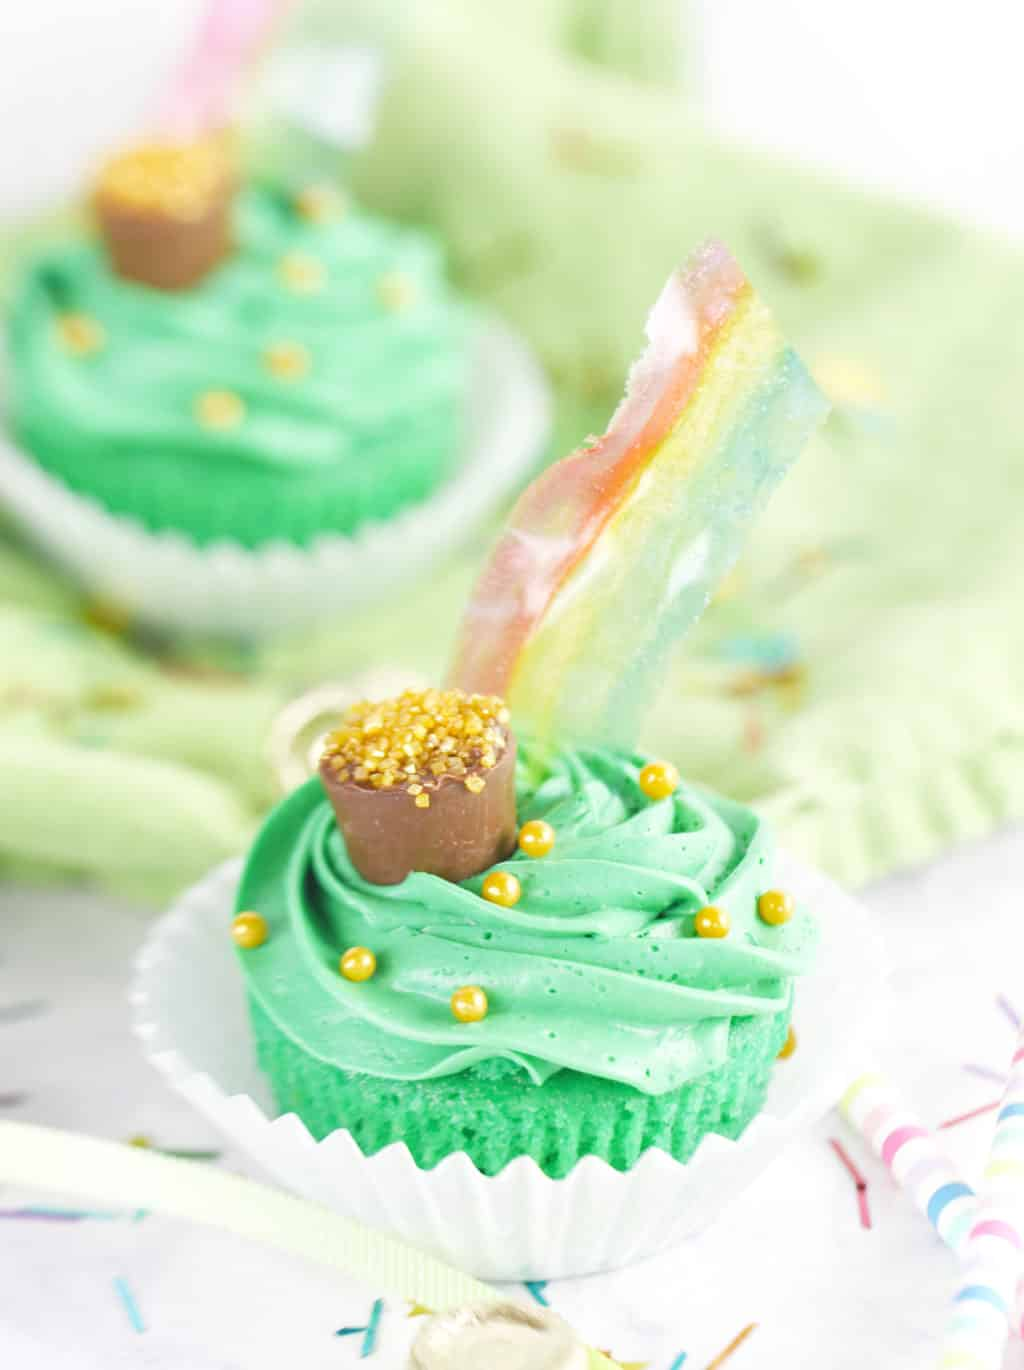 St. Patrick's Day Pot of Gold Cupcakes with Rainbows! So fun. Just use gelatin to make these easy rainbows!